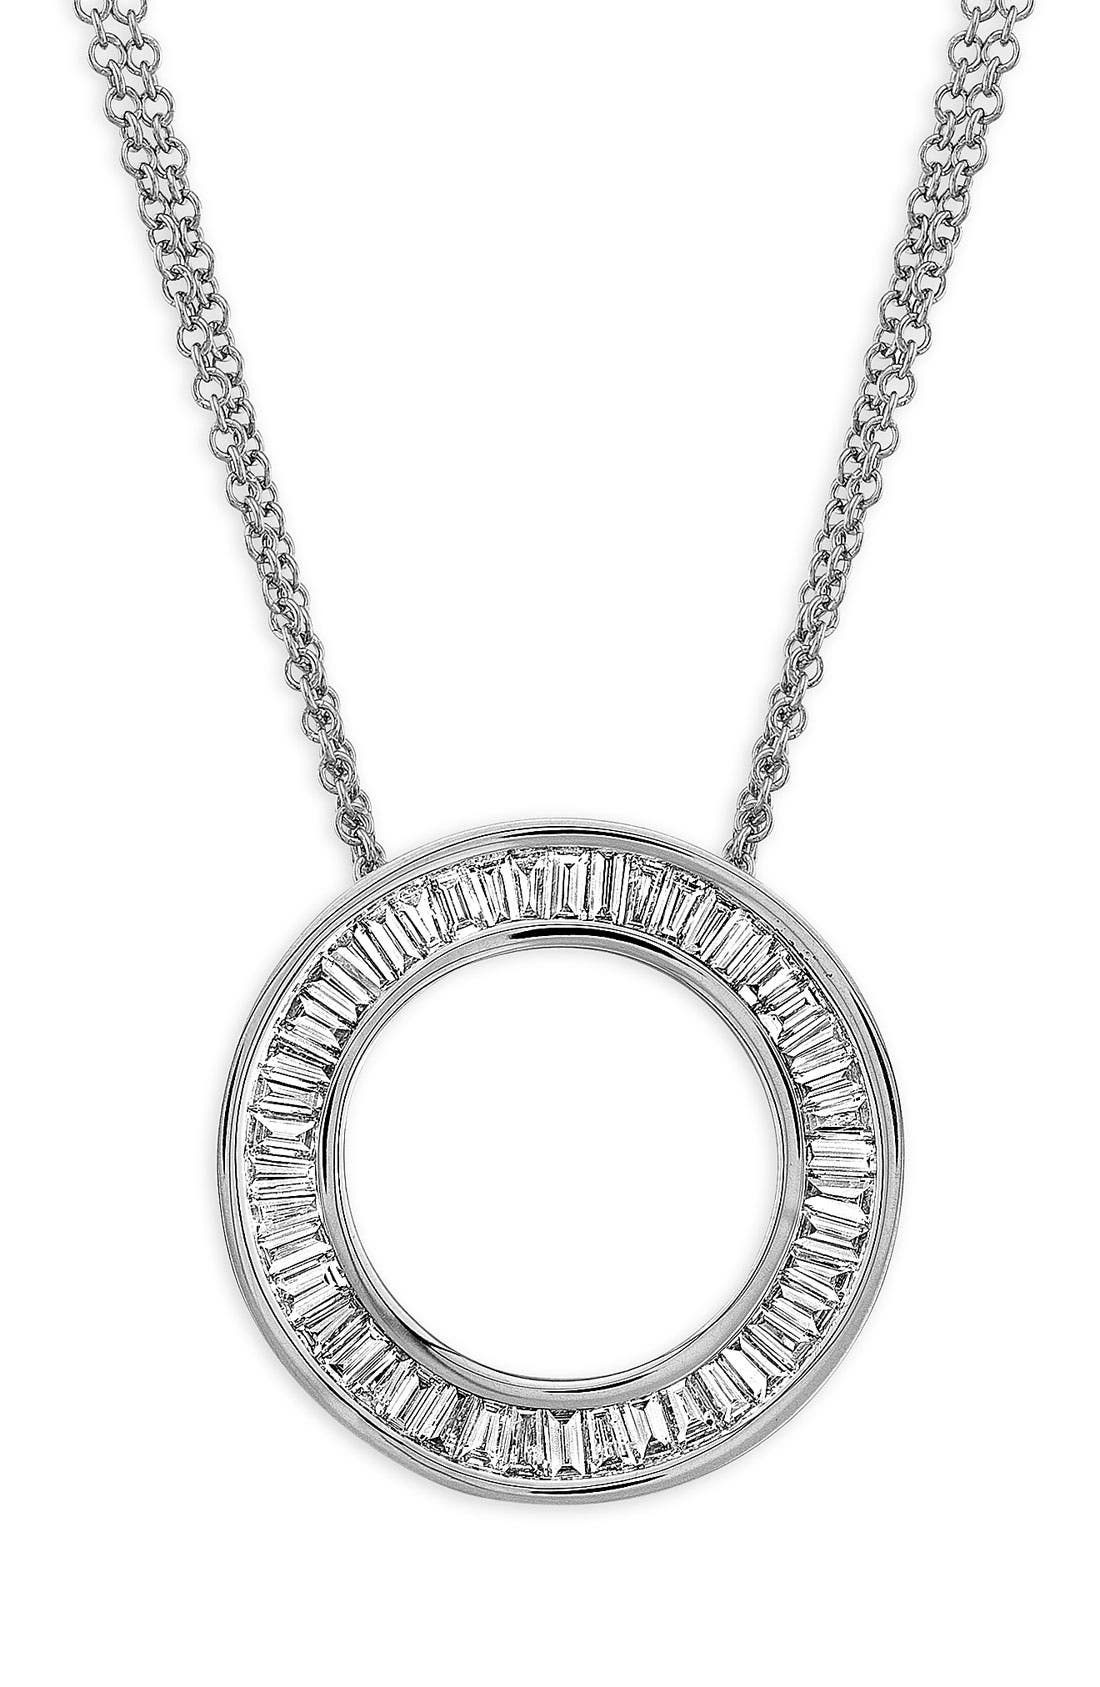 Main Image - Bony Levy 'Circle of Life' Medium Diamond Pendant Necklace (Nordstrom Exclusive)